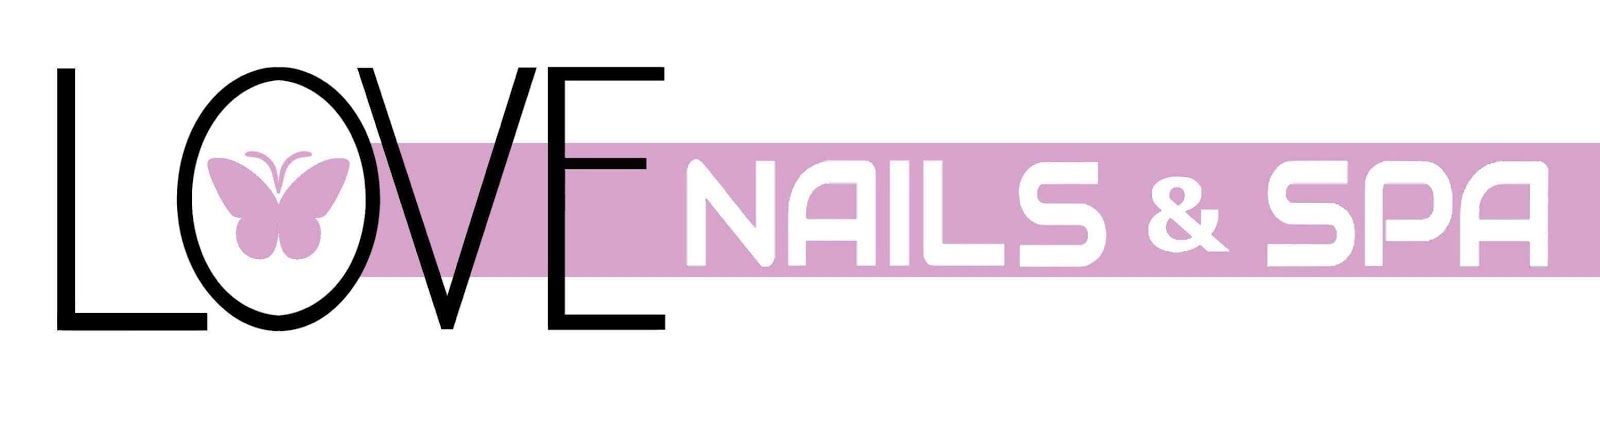 Salon Policy | Nail salon 45069 | Love Nails & Spa